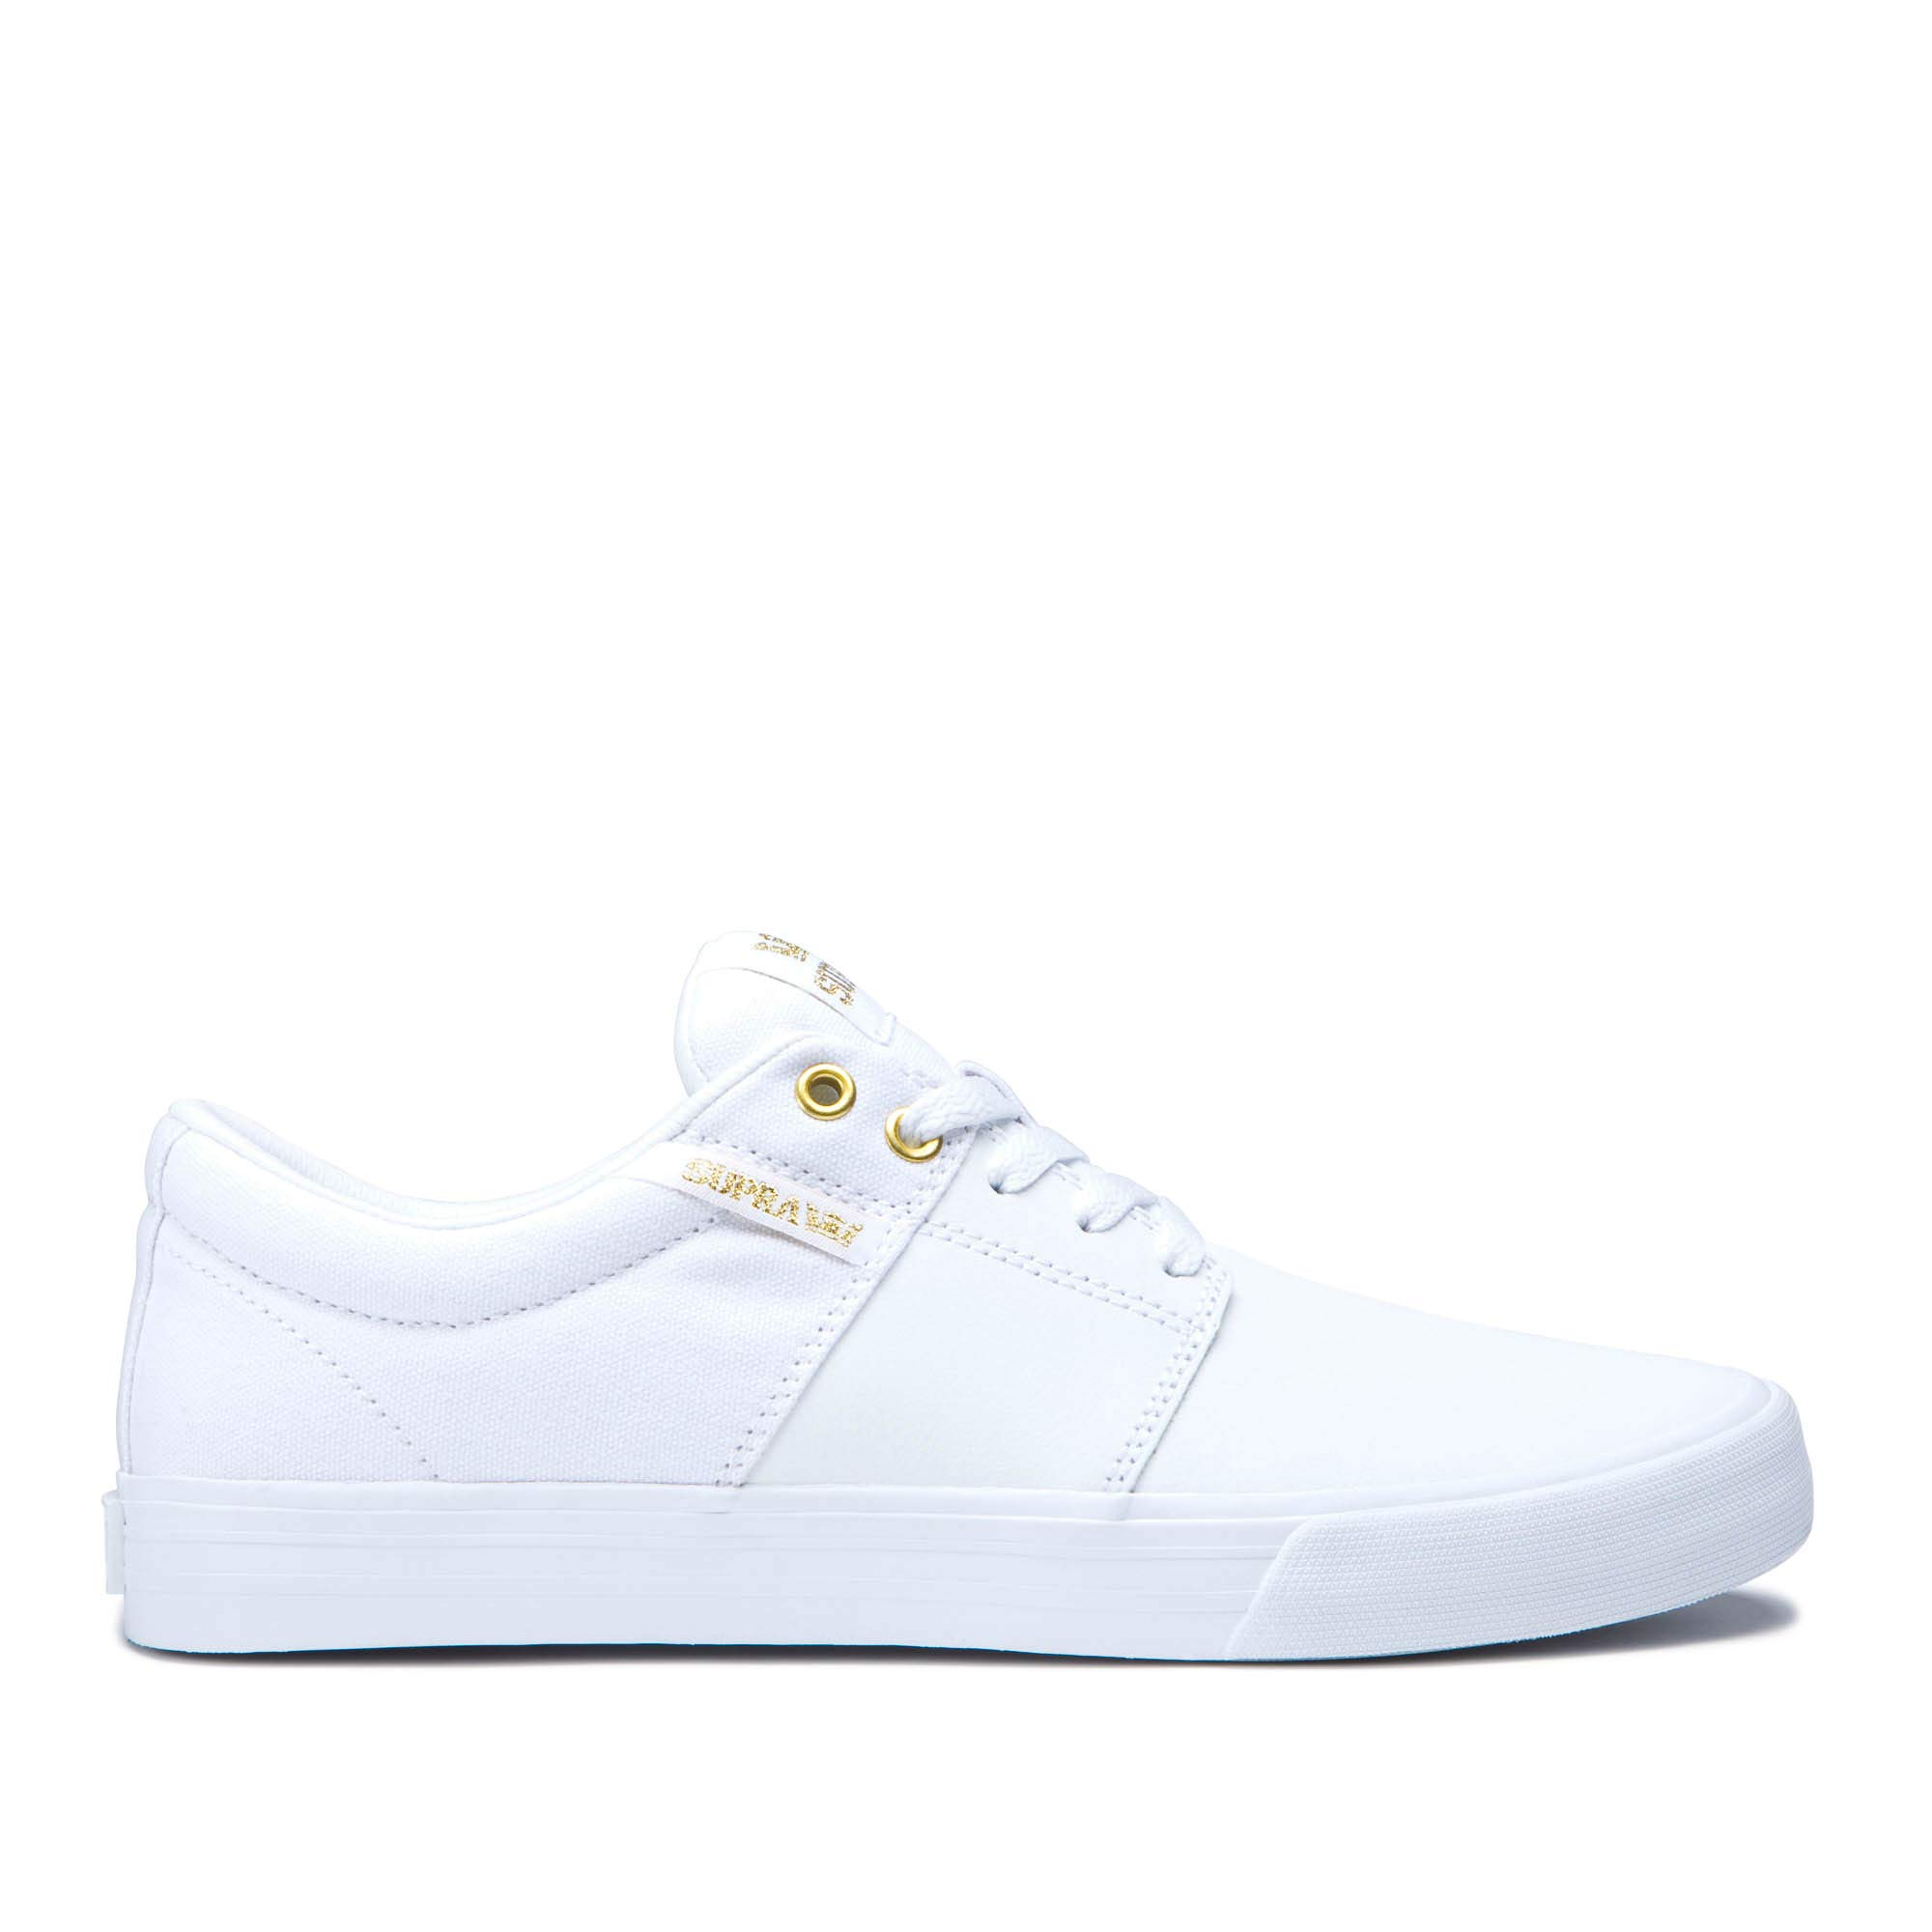 Supra Unisex Adults' Stacks Vulc Ii Low-Top Sneakers, Gold-White 122 6 UK